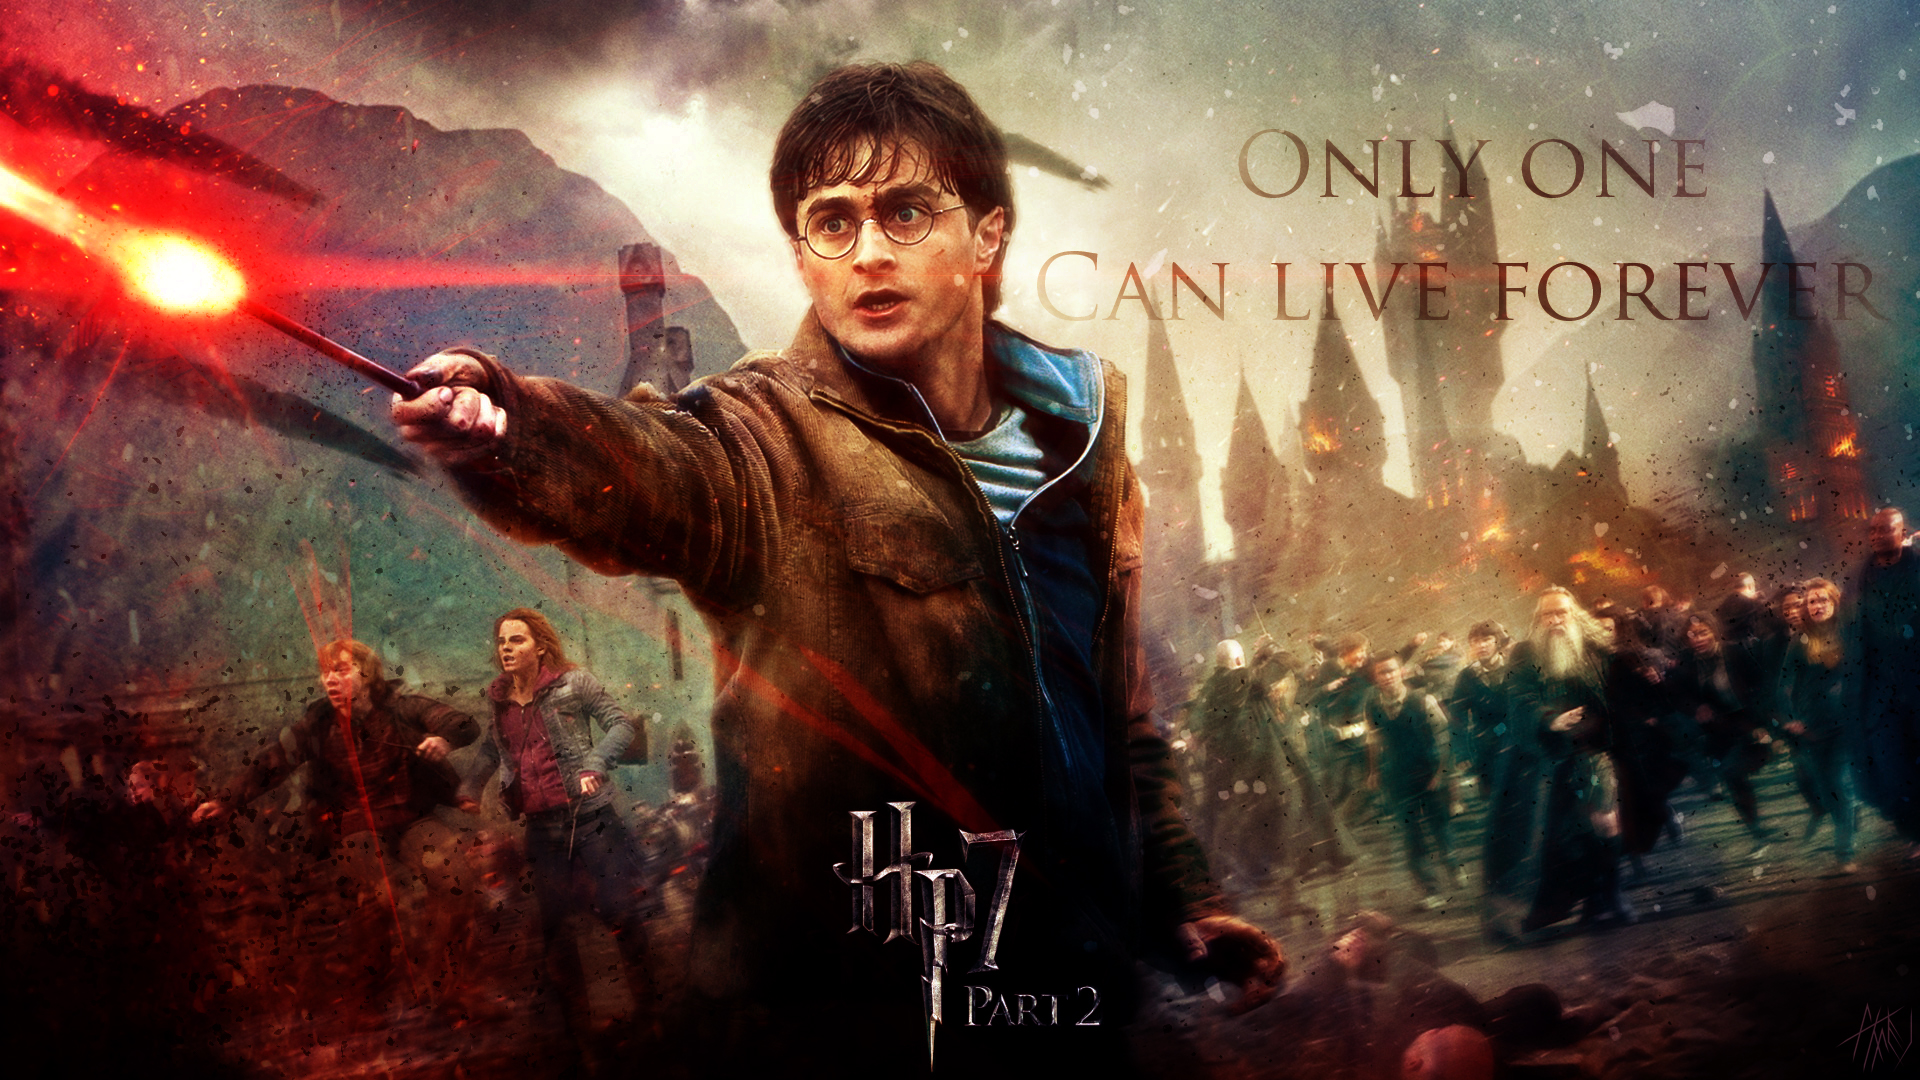 Harry Potter And The Deathly Hallows Wallpaper By Dj Applej Sound